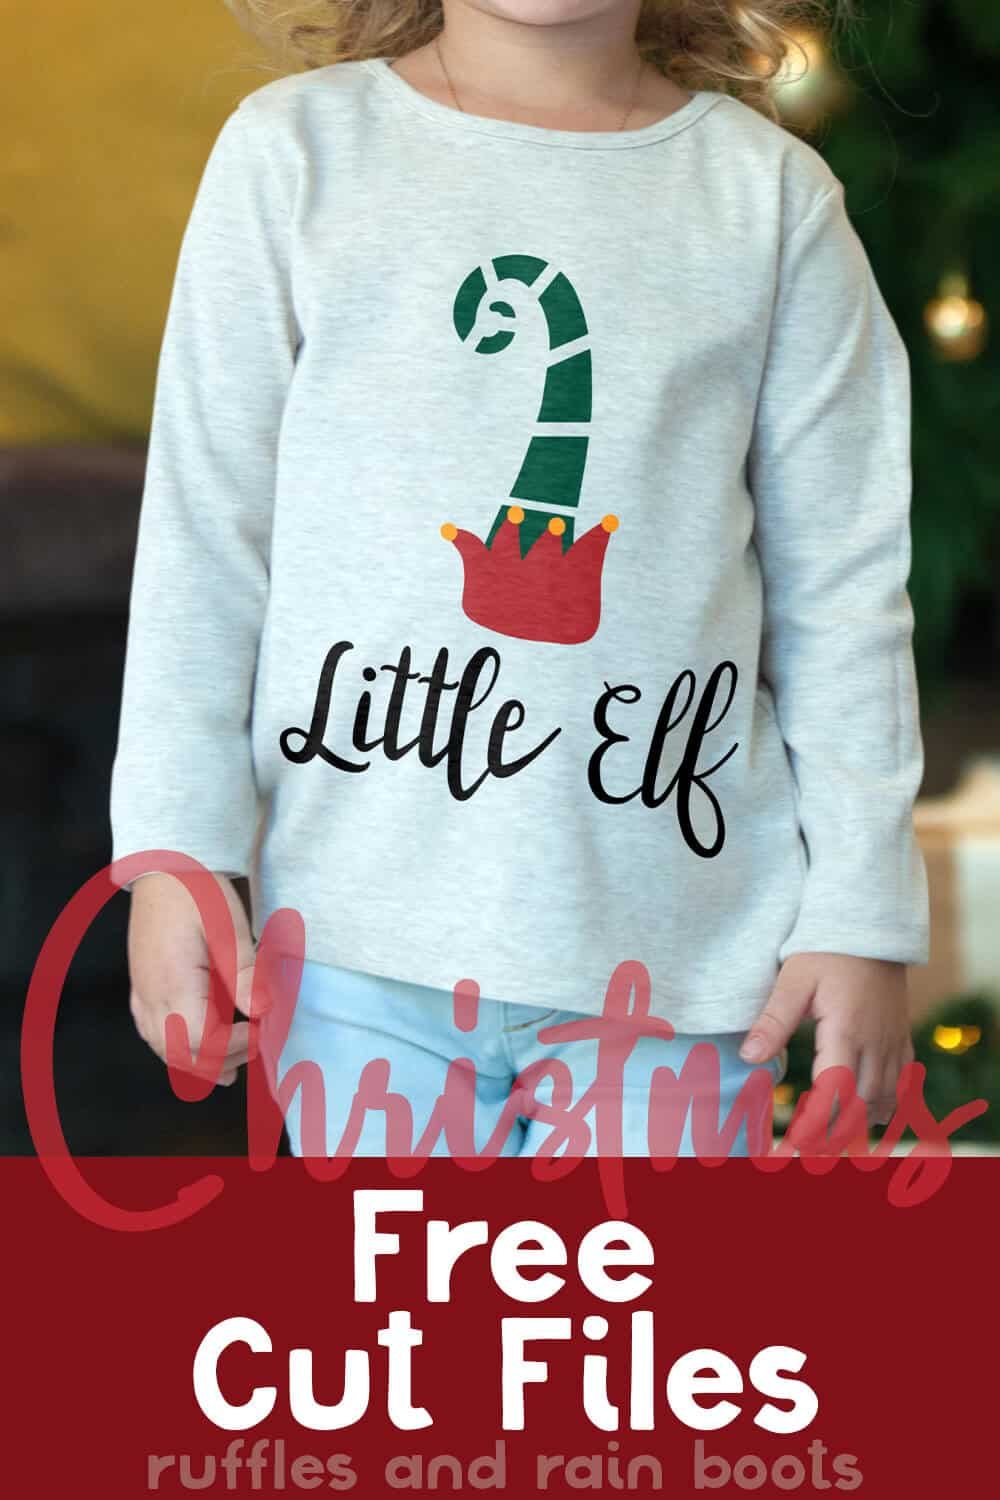 free christmas svg on a little girl's shirt with text which reads christmas free cut files